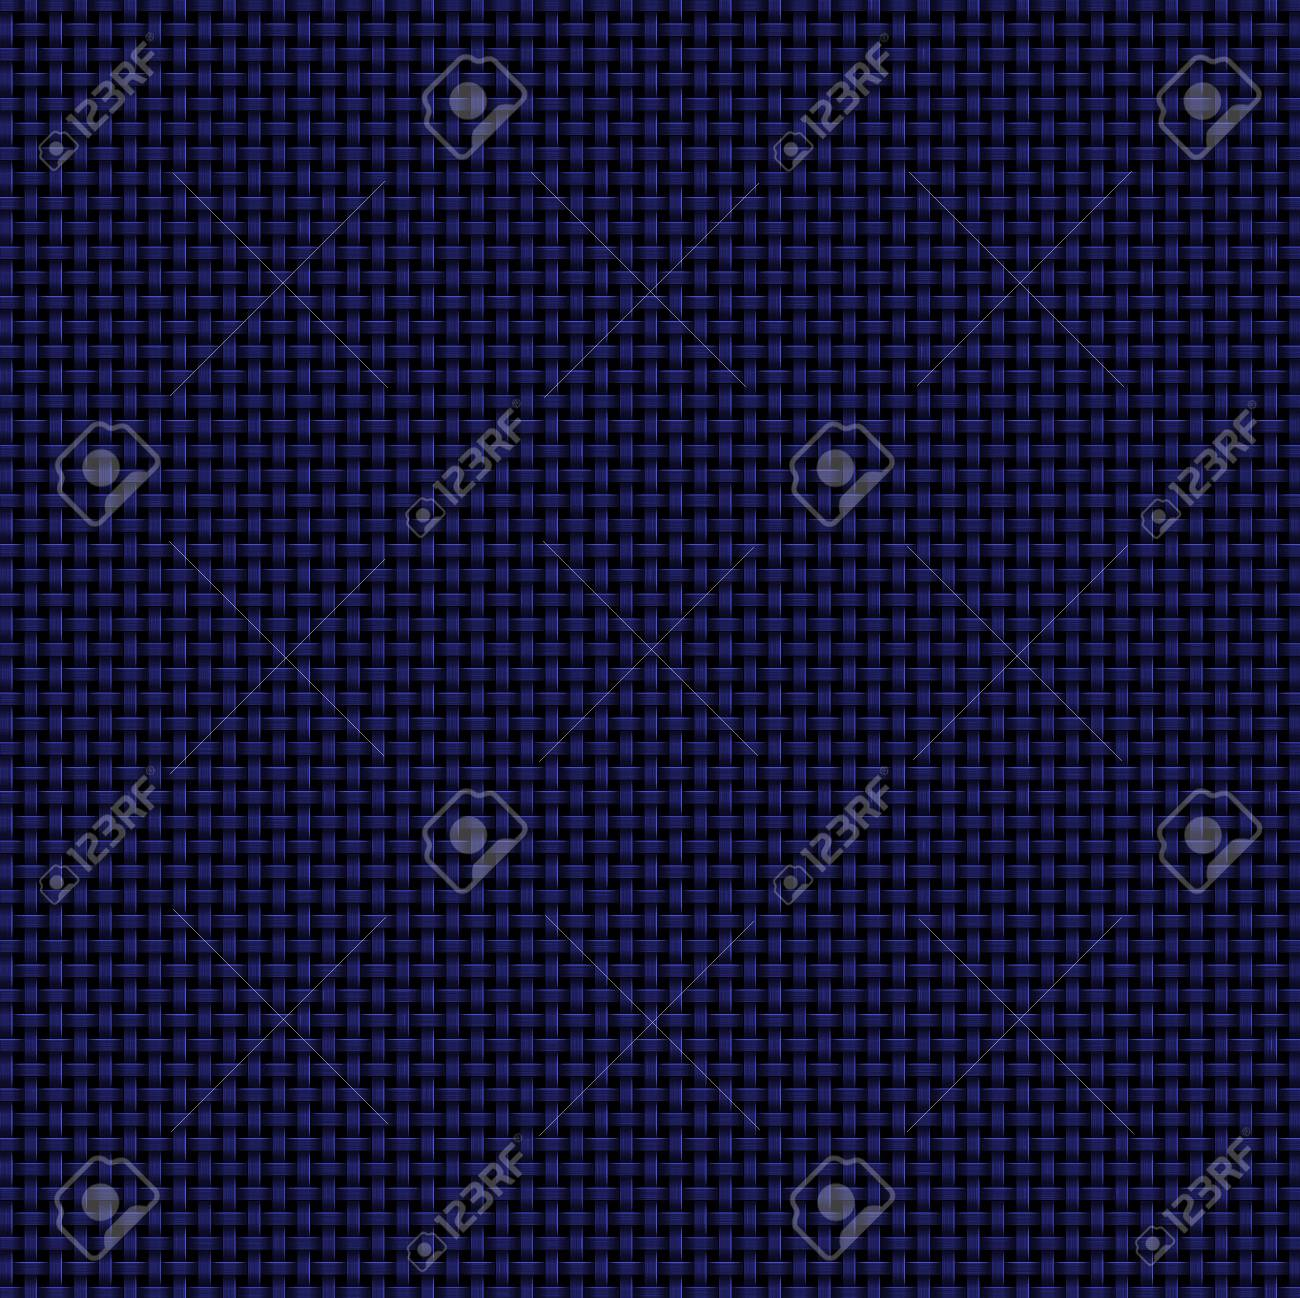 Dark Blue Woven Abstract Background Computer Generated Basket